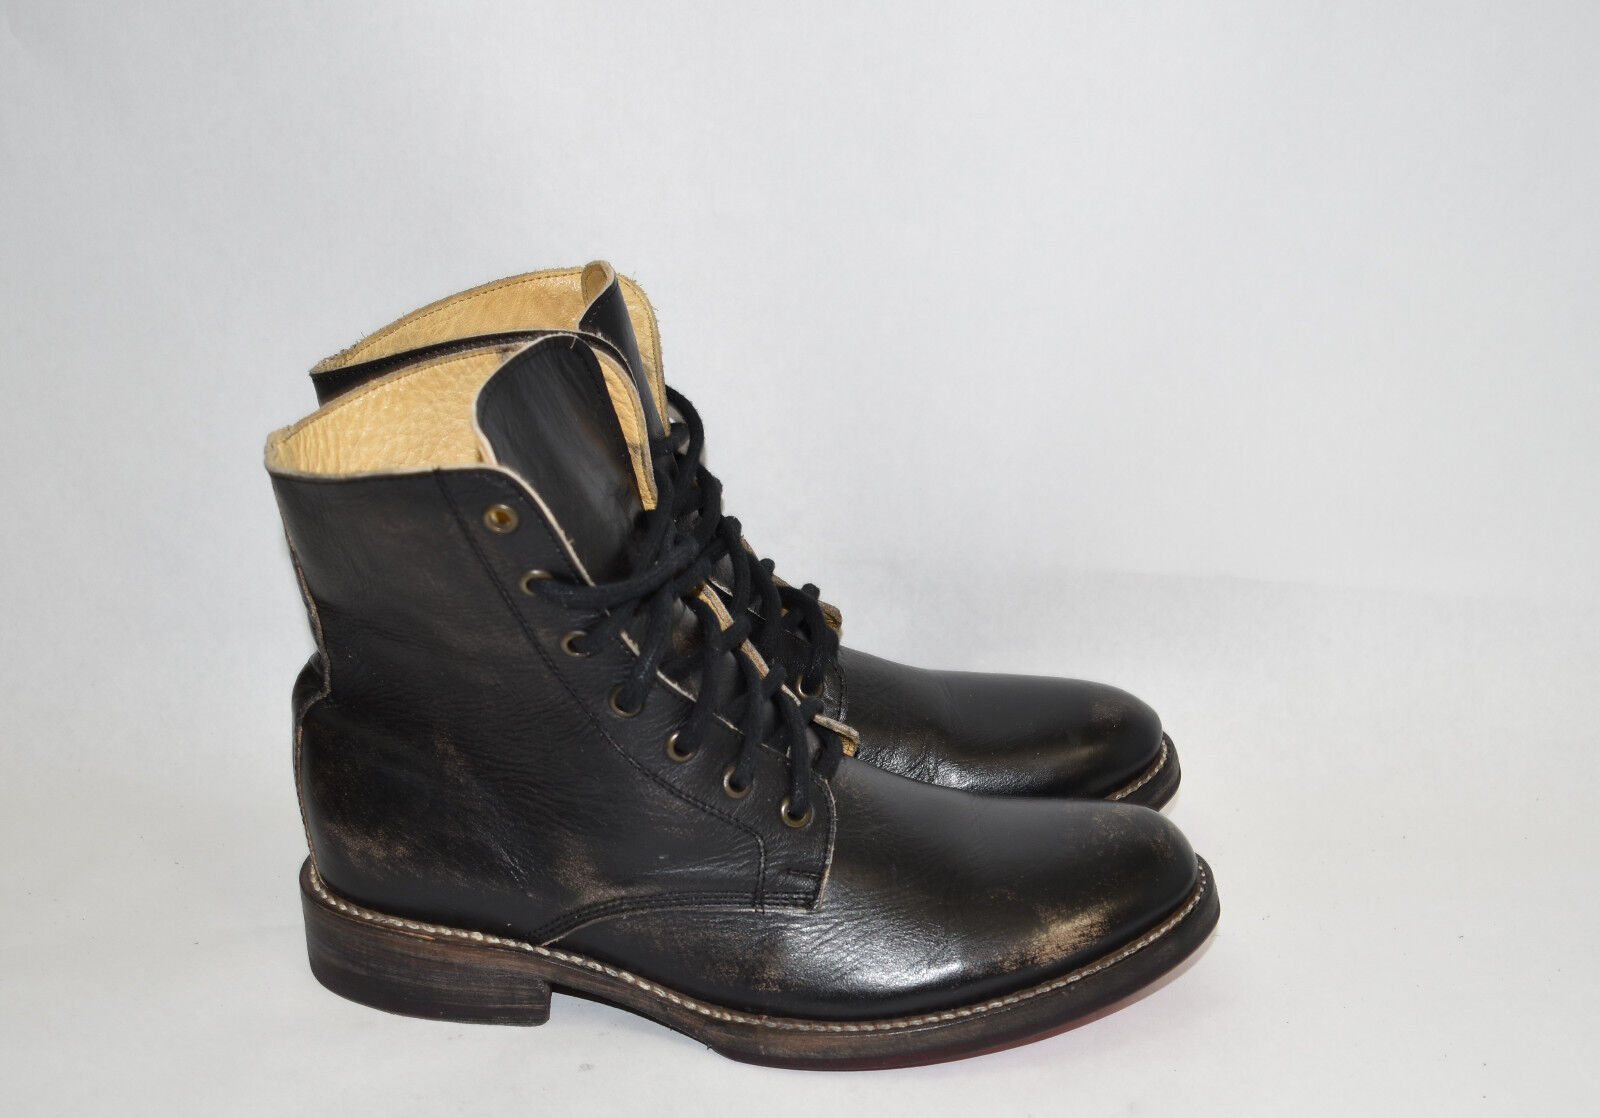 New  Bed Stu  Post  Men's nero Hand Washed Leather Ankle Combat stivali Dimensione 8.5